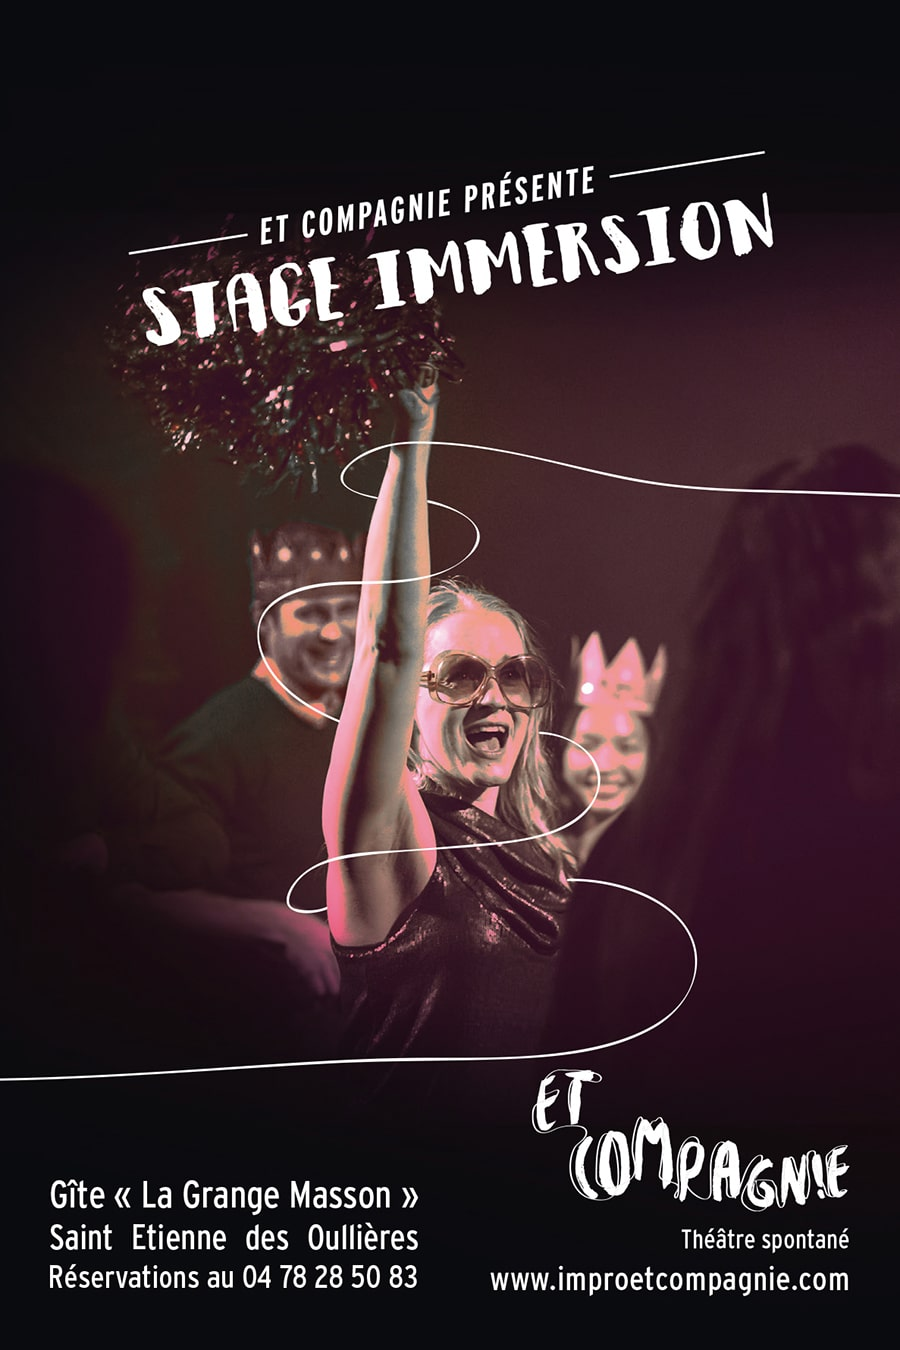 Stage immersion